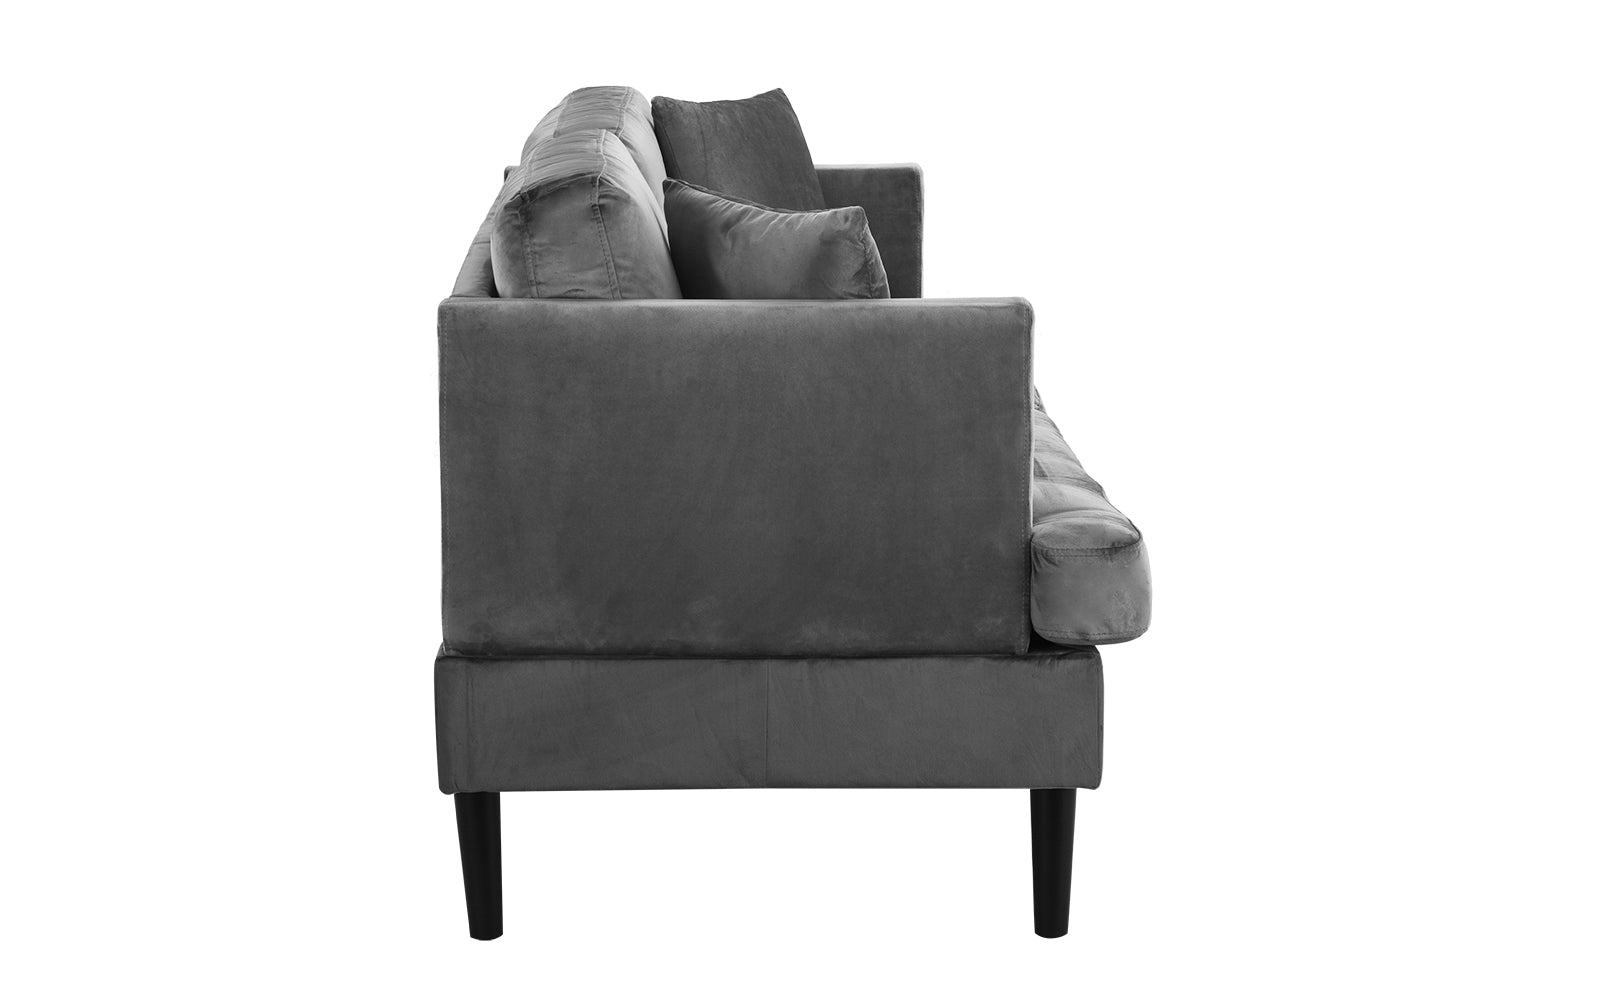 Sensational Greta Old Hollywood Velvet Tufted Loveseat Short Links Chair Design For Home Short Linksinfo